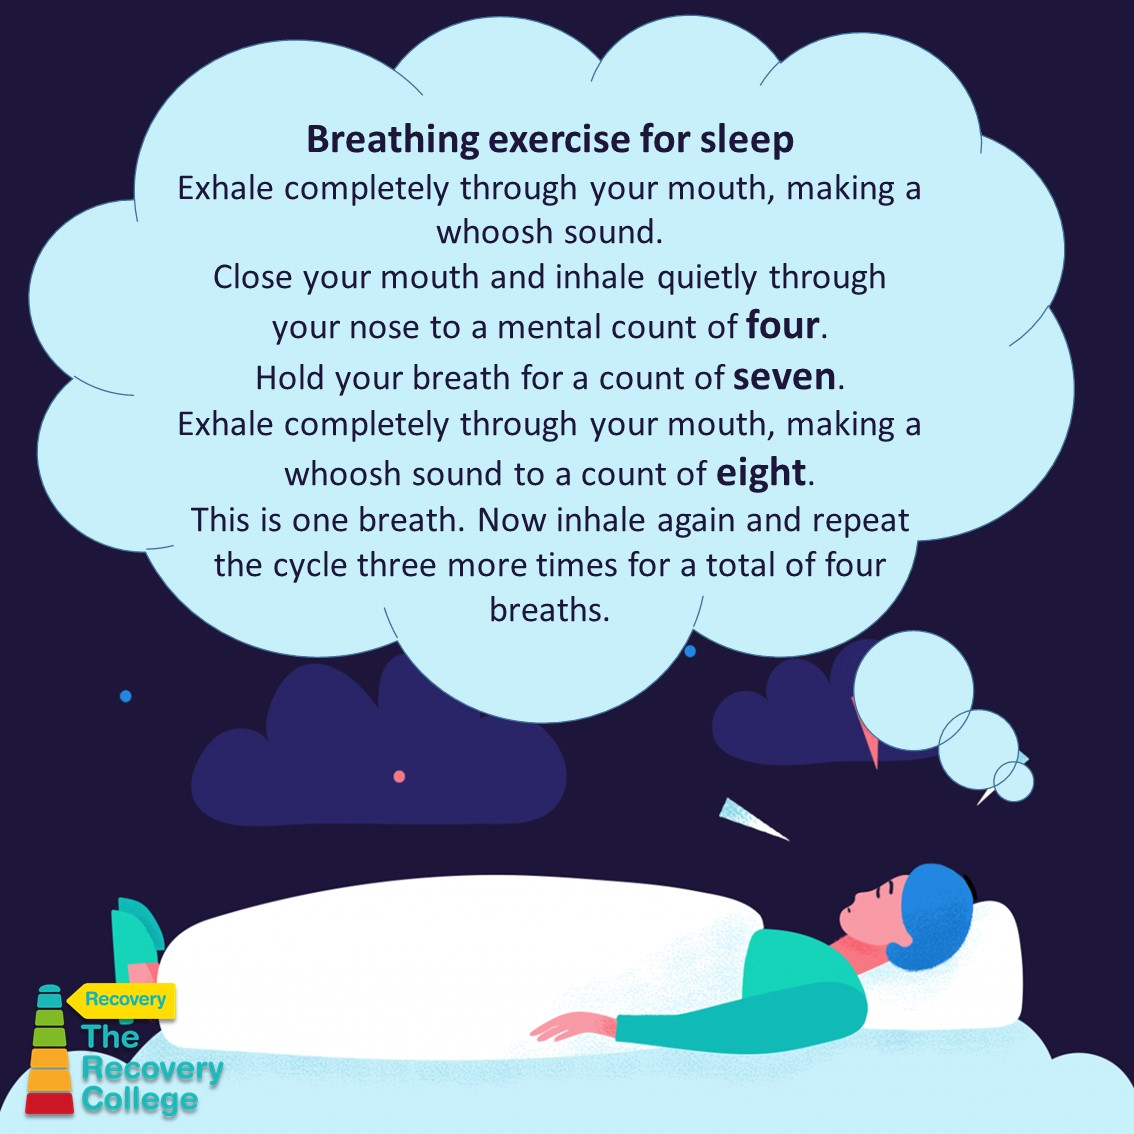 As well as helping insomniacs, the 4-7-8 breathing exercise helps to calm over-stressed minds, managing anxiety and controlling anger responses, by forcing your heartbeat to slow down @DraycottPaul @Southern_NHSFT @StaffSouthern @CarersTogether1 @CarersinSoton @italkHants